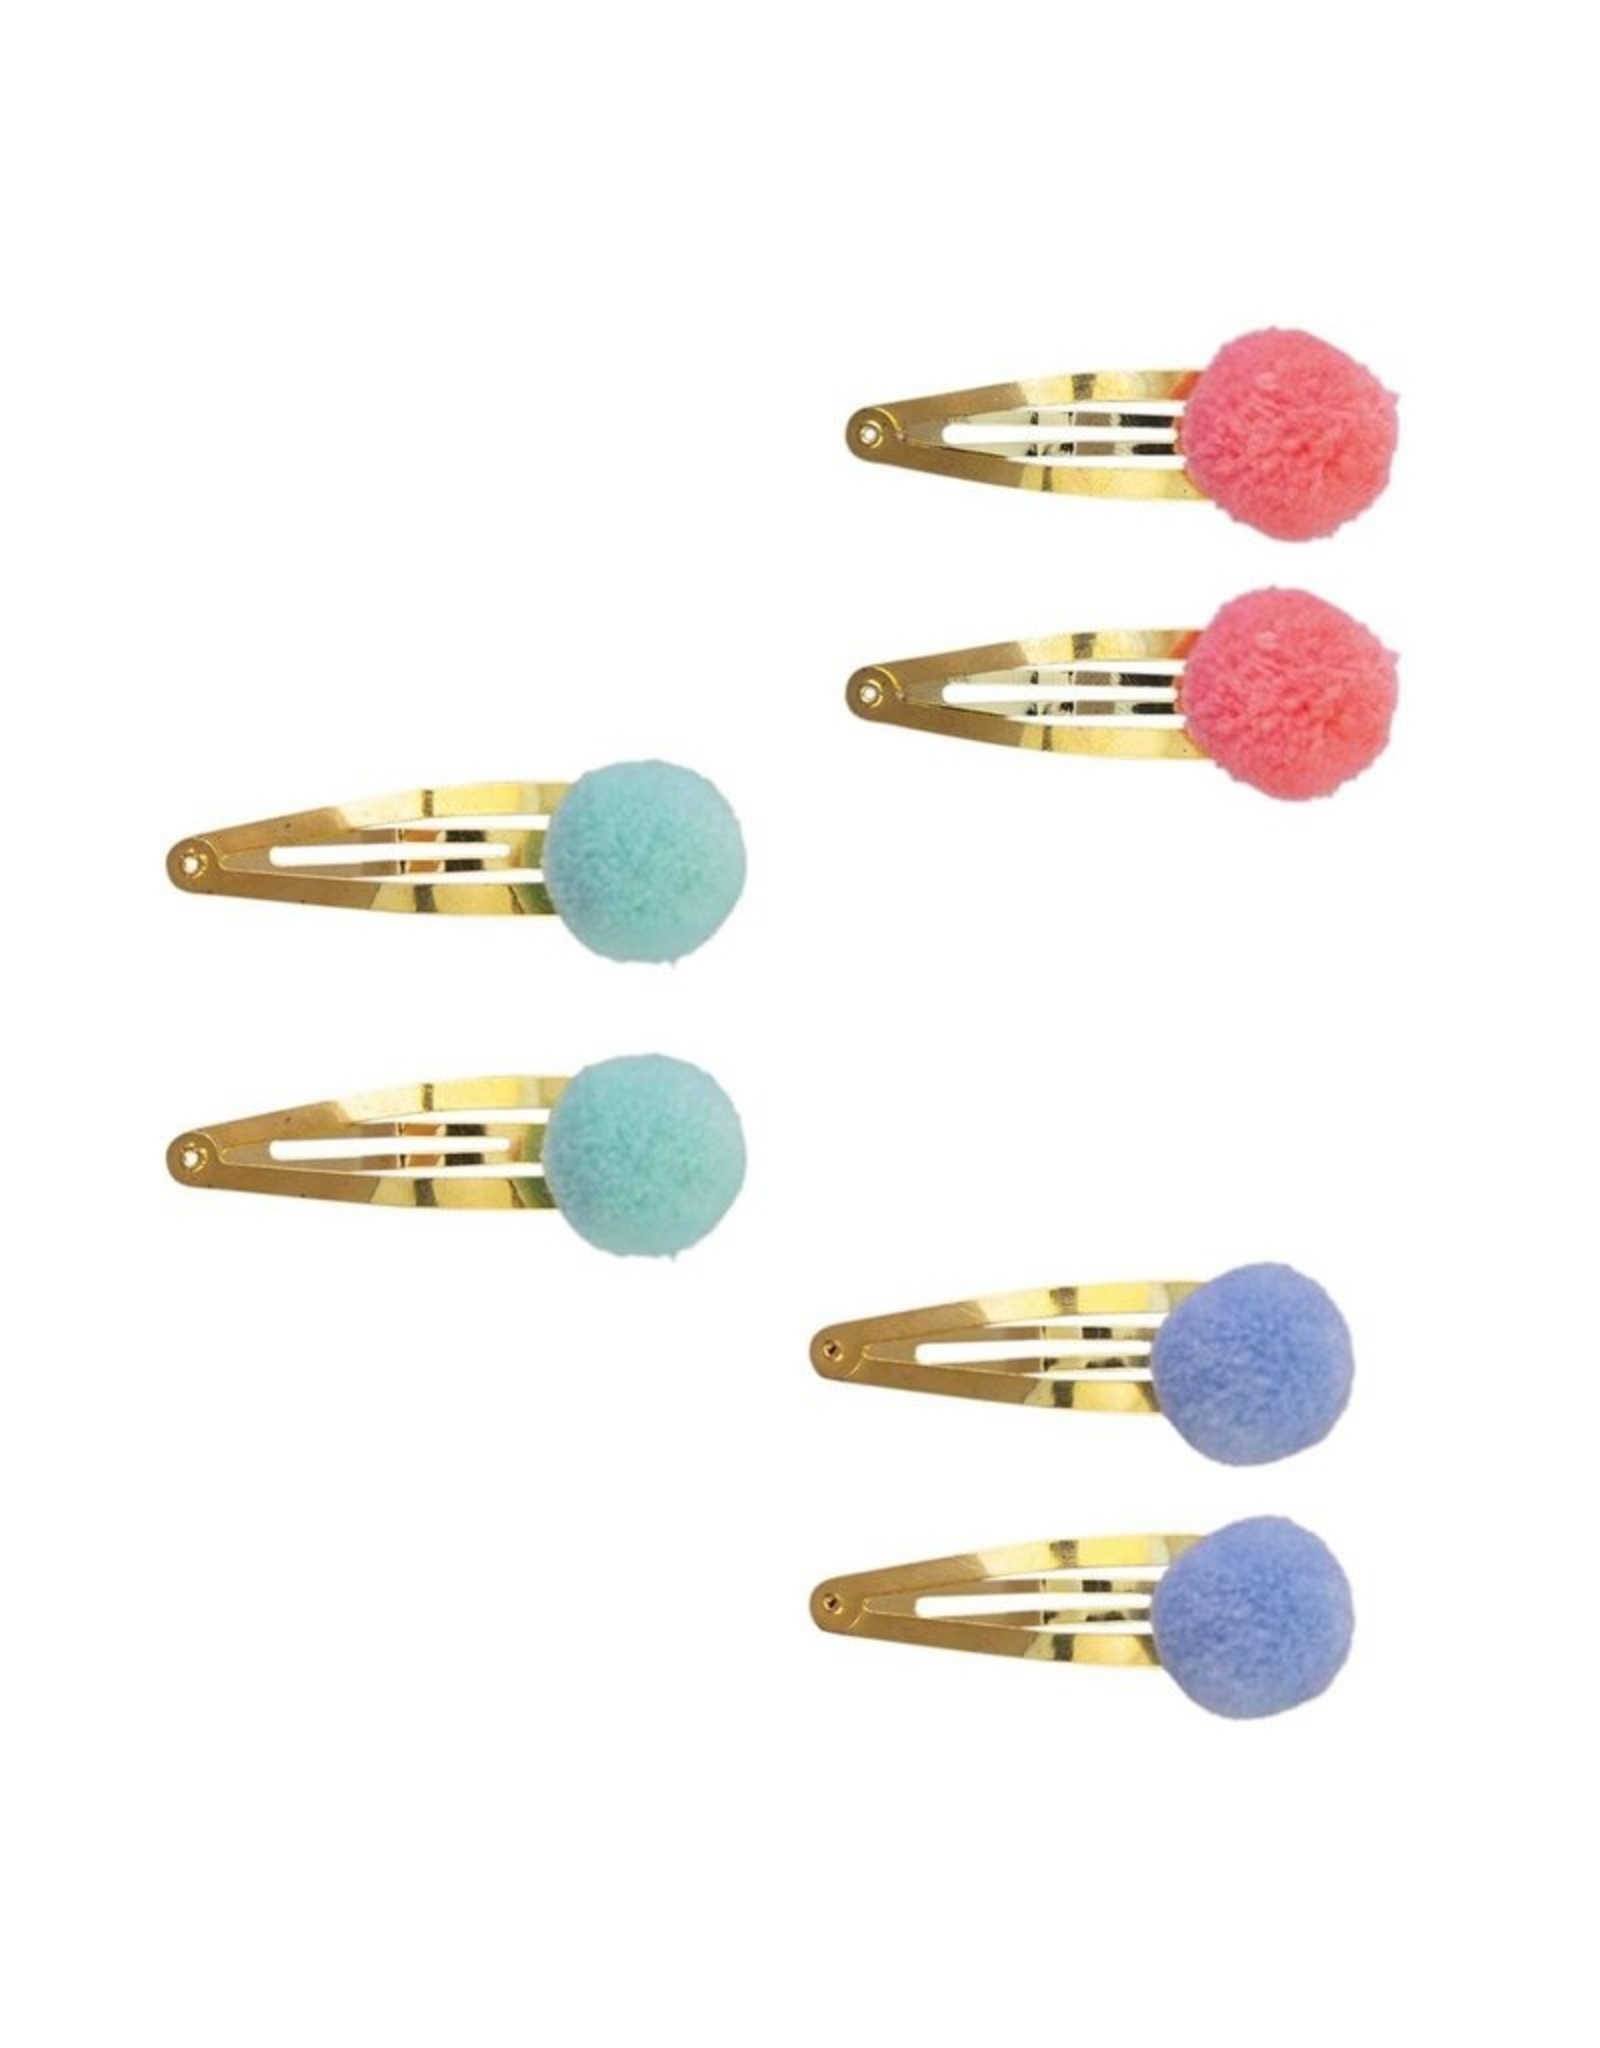 Global Affairs Global Affairs hairclip gold with pompom blue